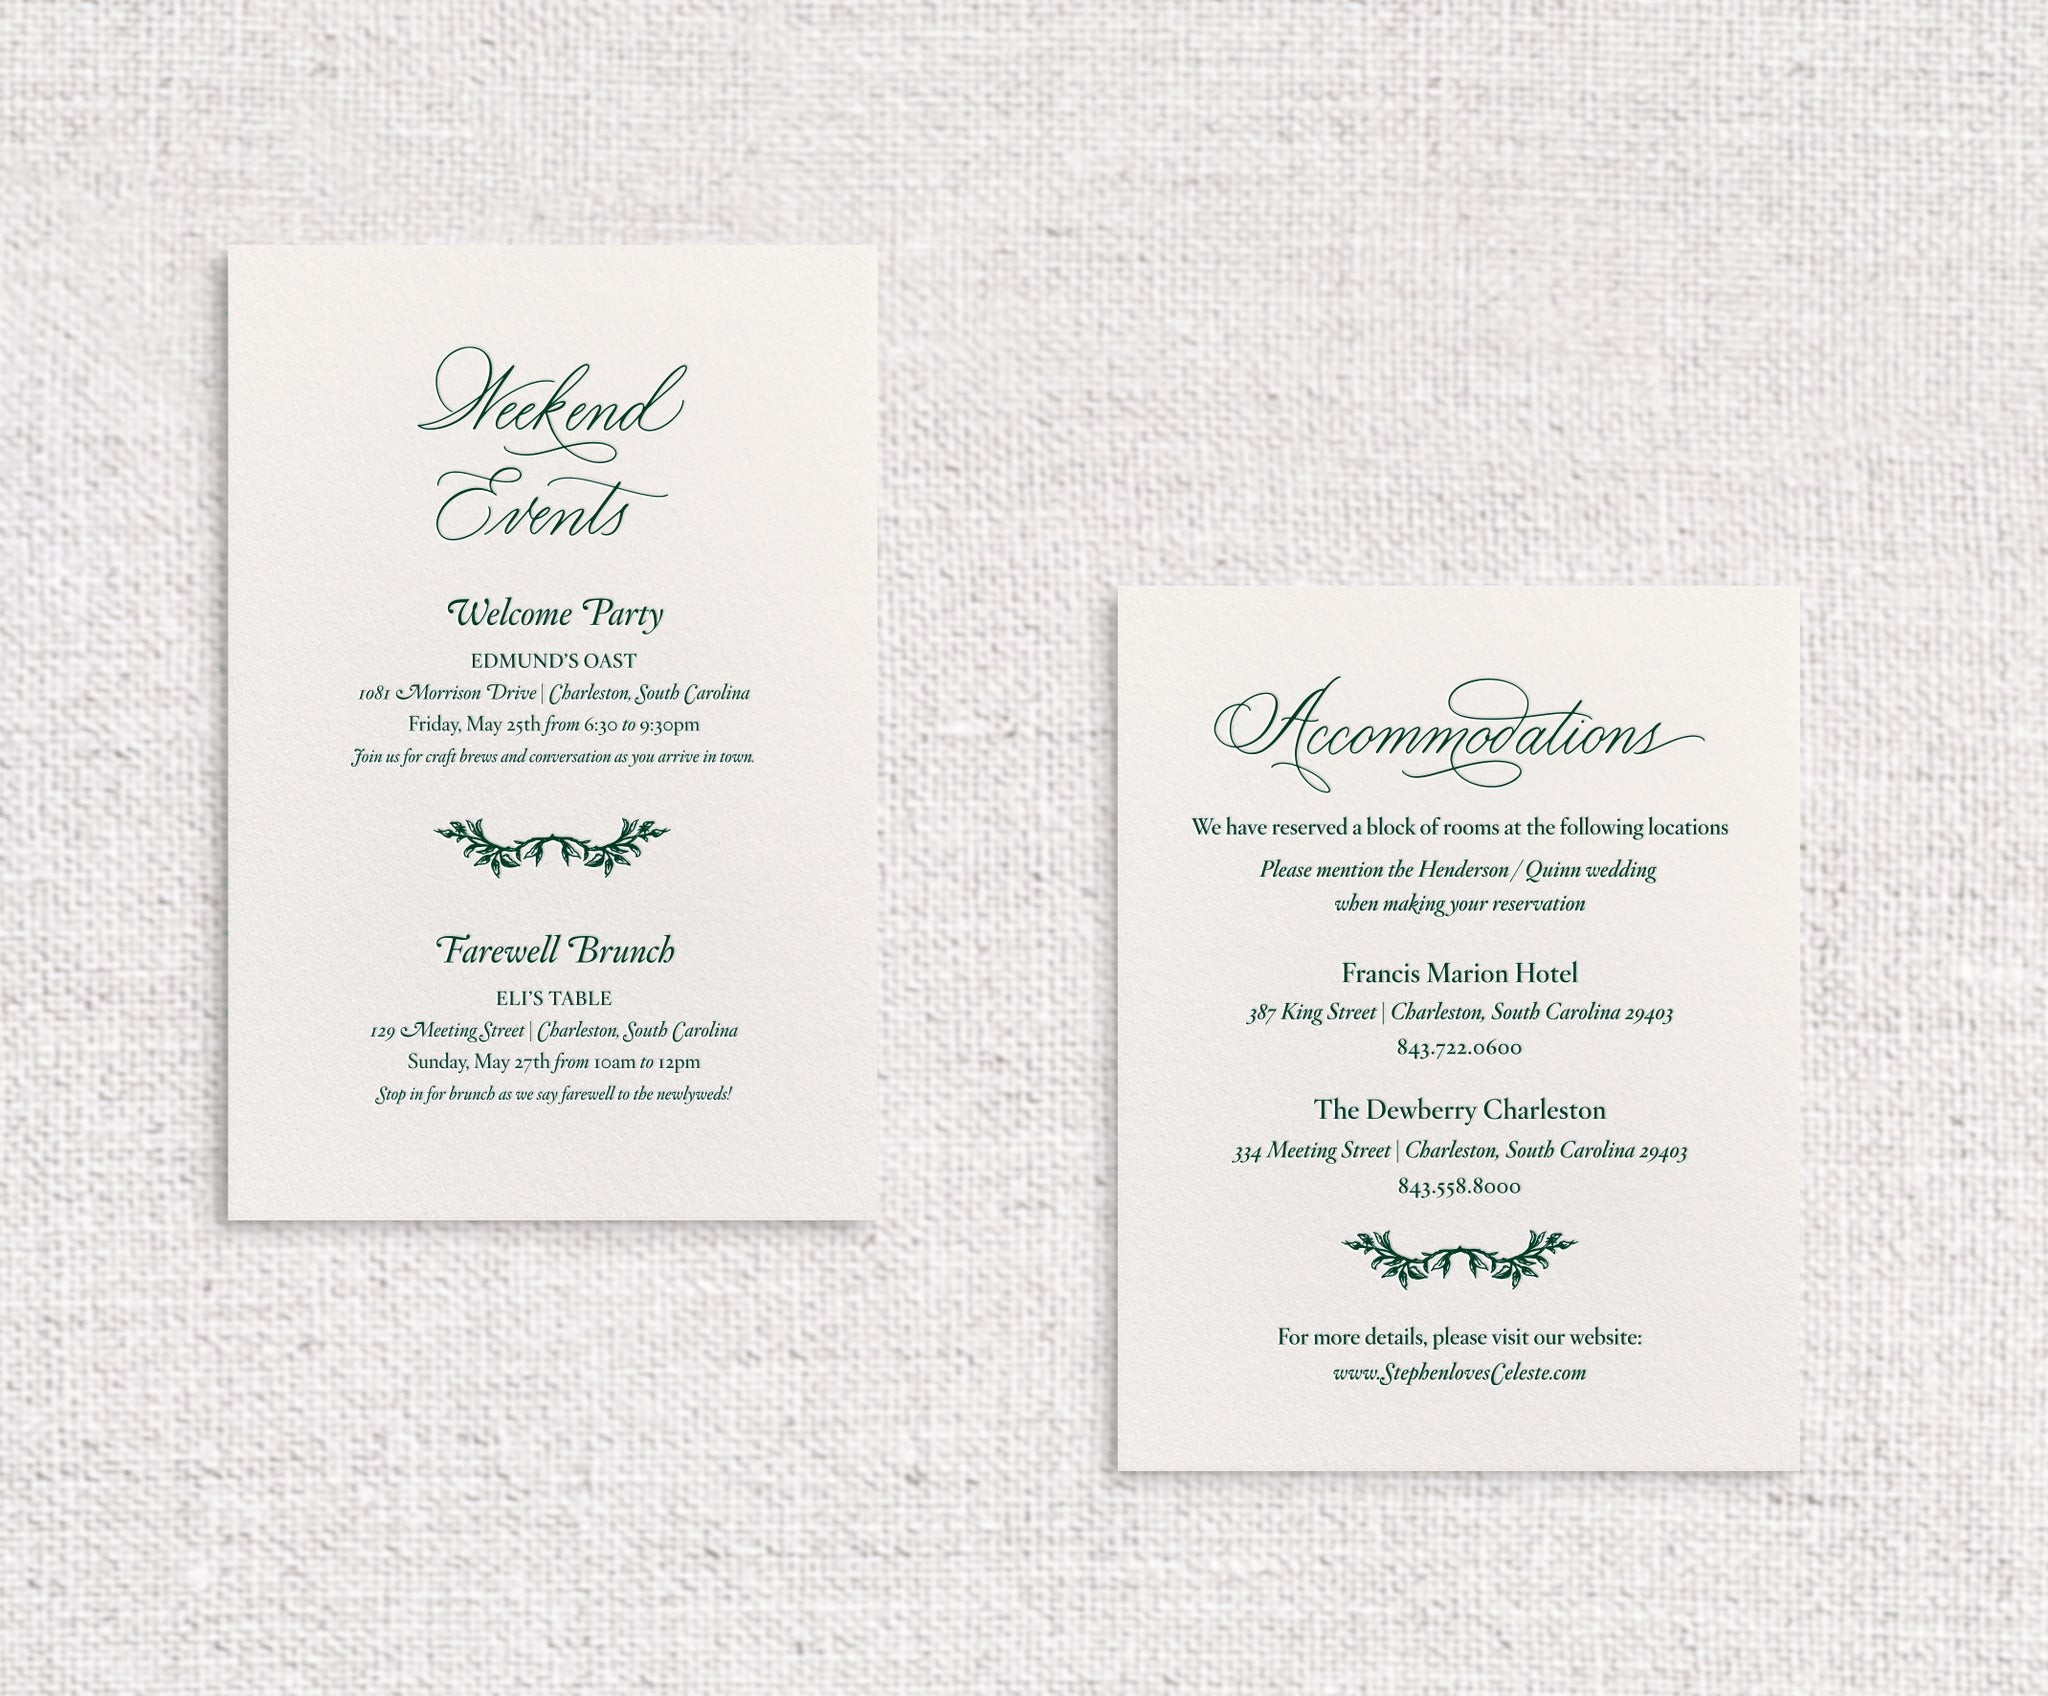 Celeste details cards letterpressed in lockwood ink on ivory stock